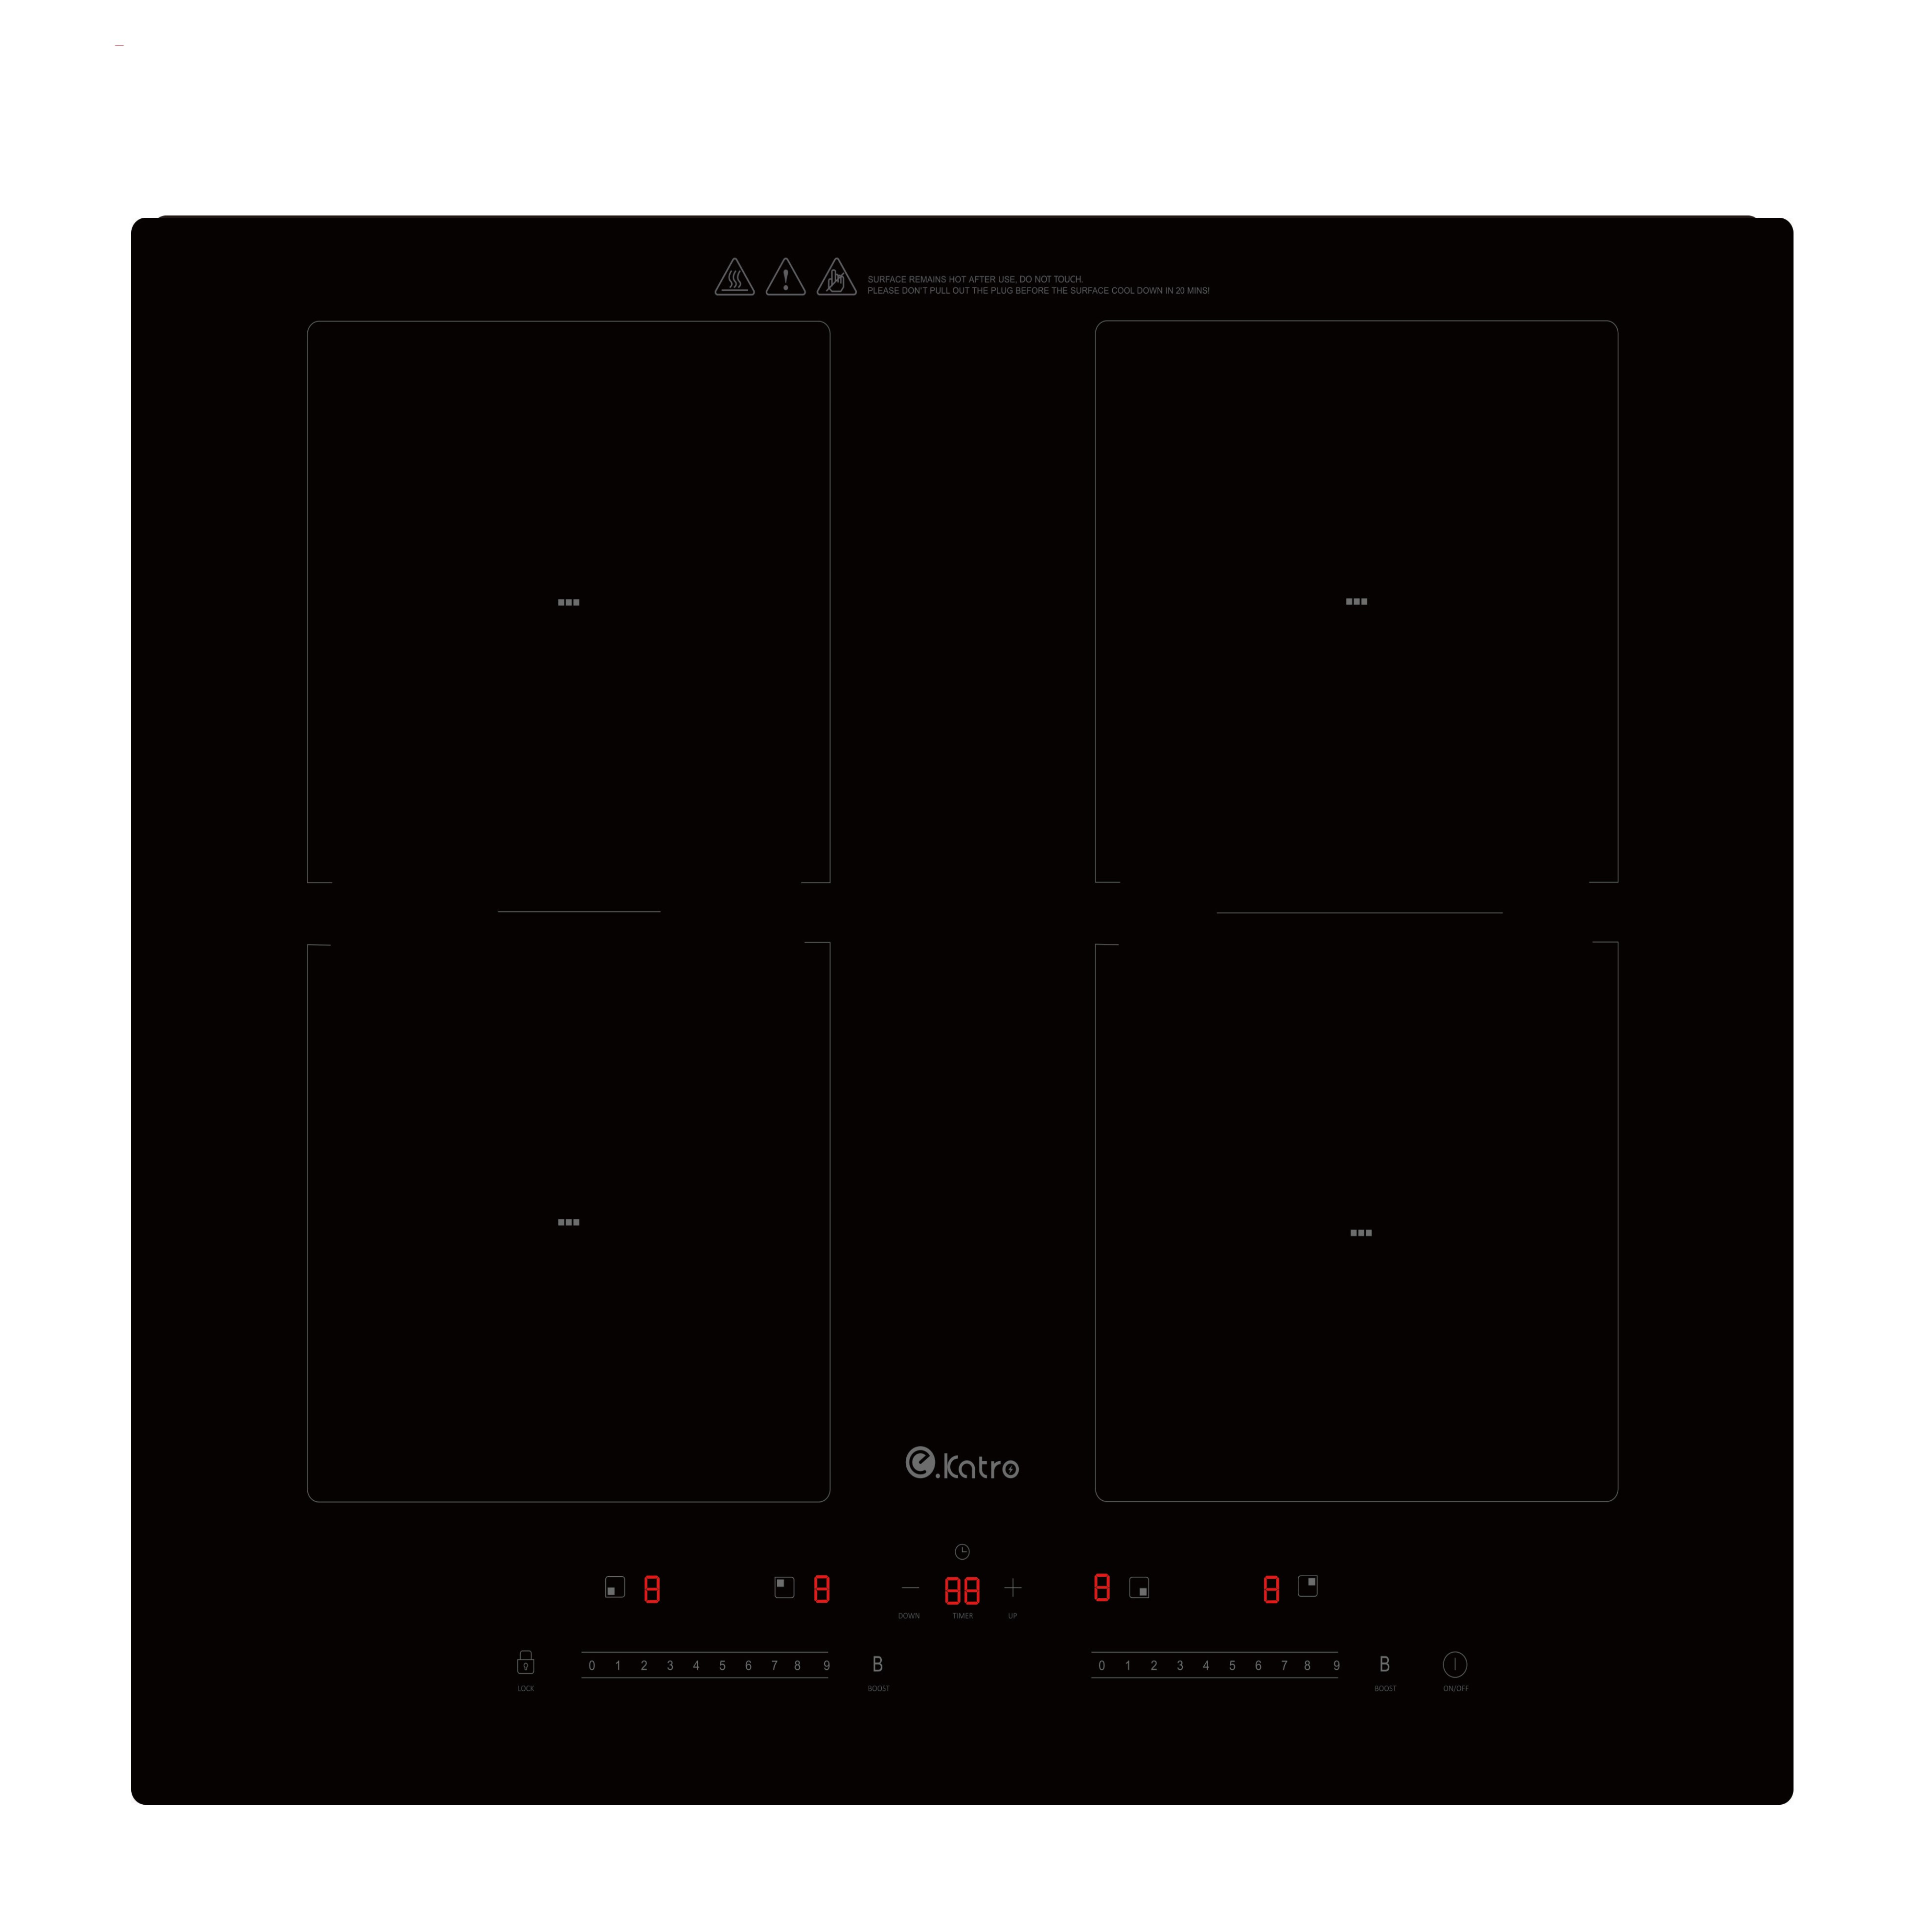 BLack Large area Schott glass Four Burners Build-in Induction hob